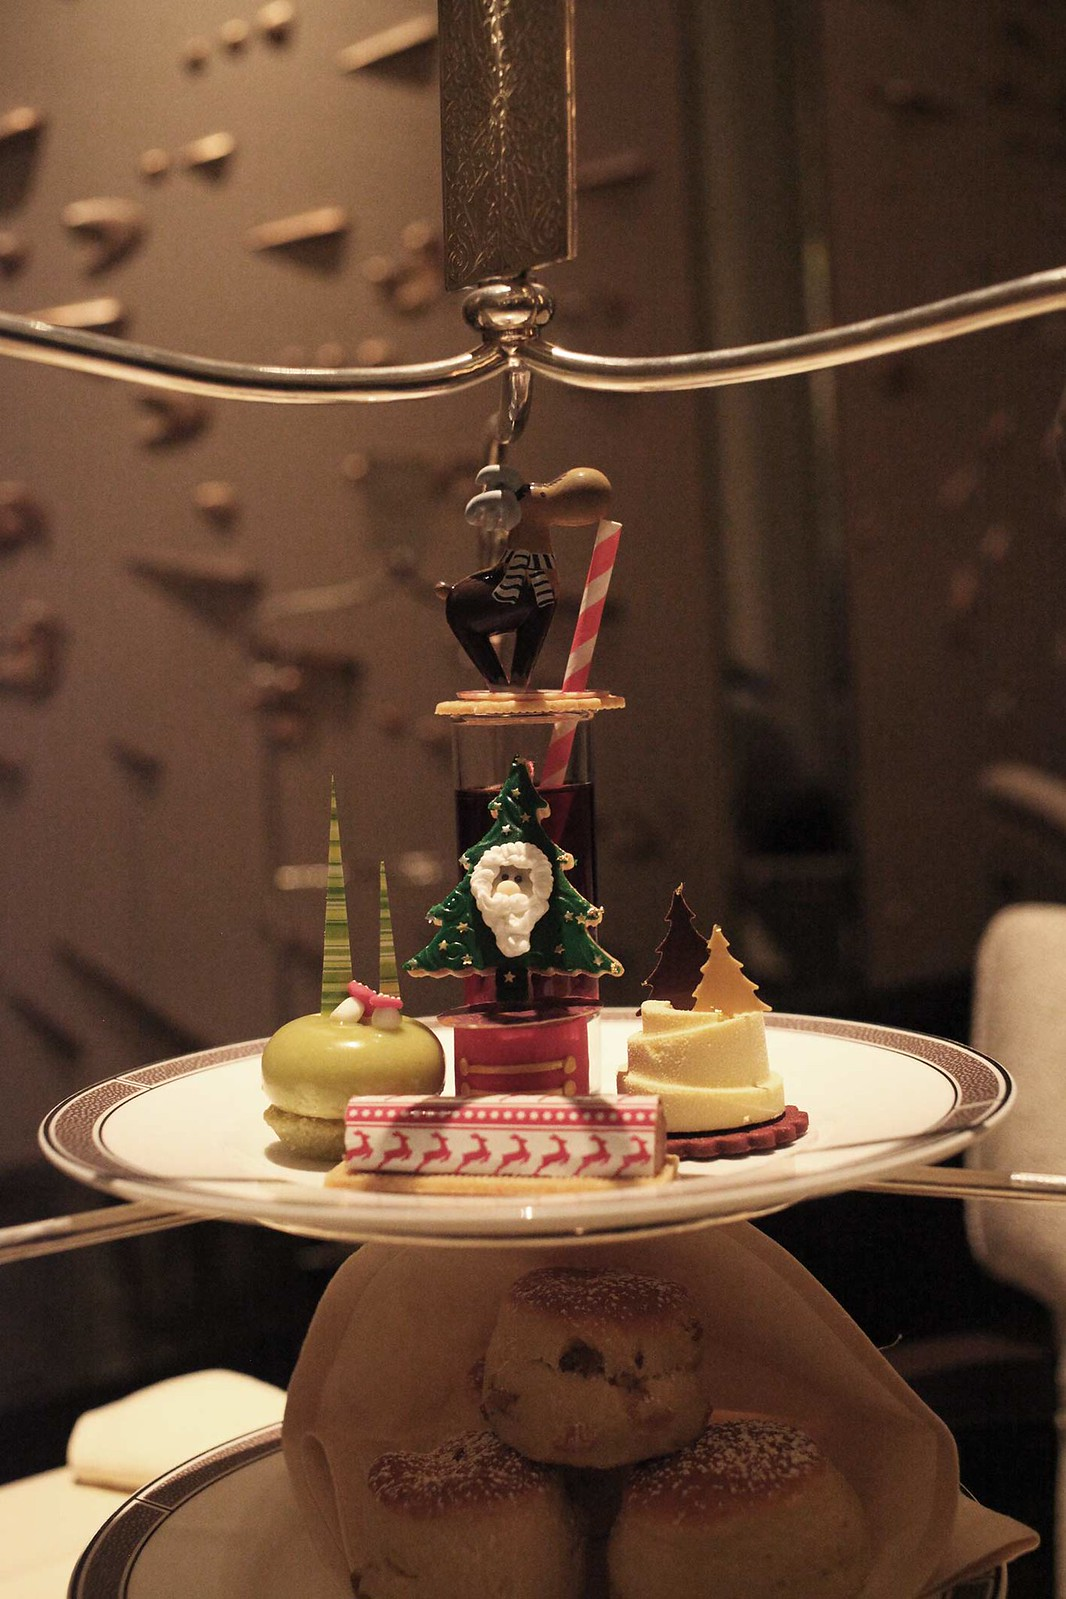 festive-afternoon-tea-at-the-langham-hotel-christmas